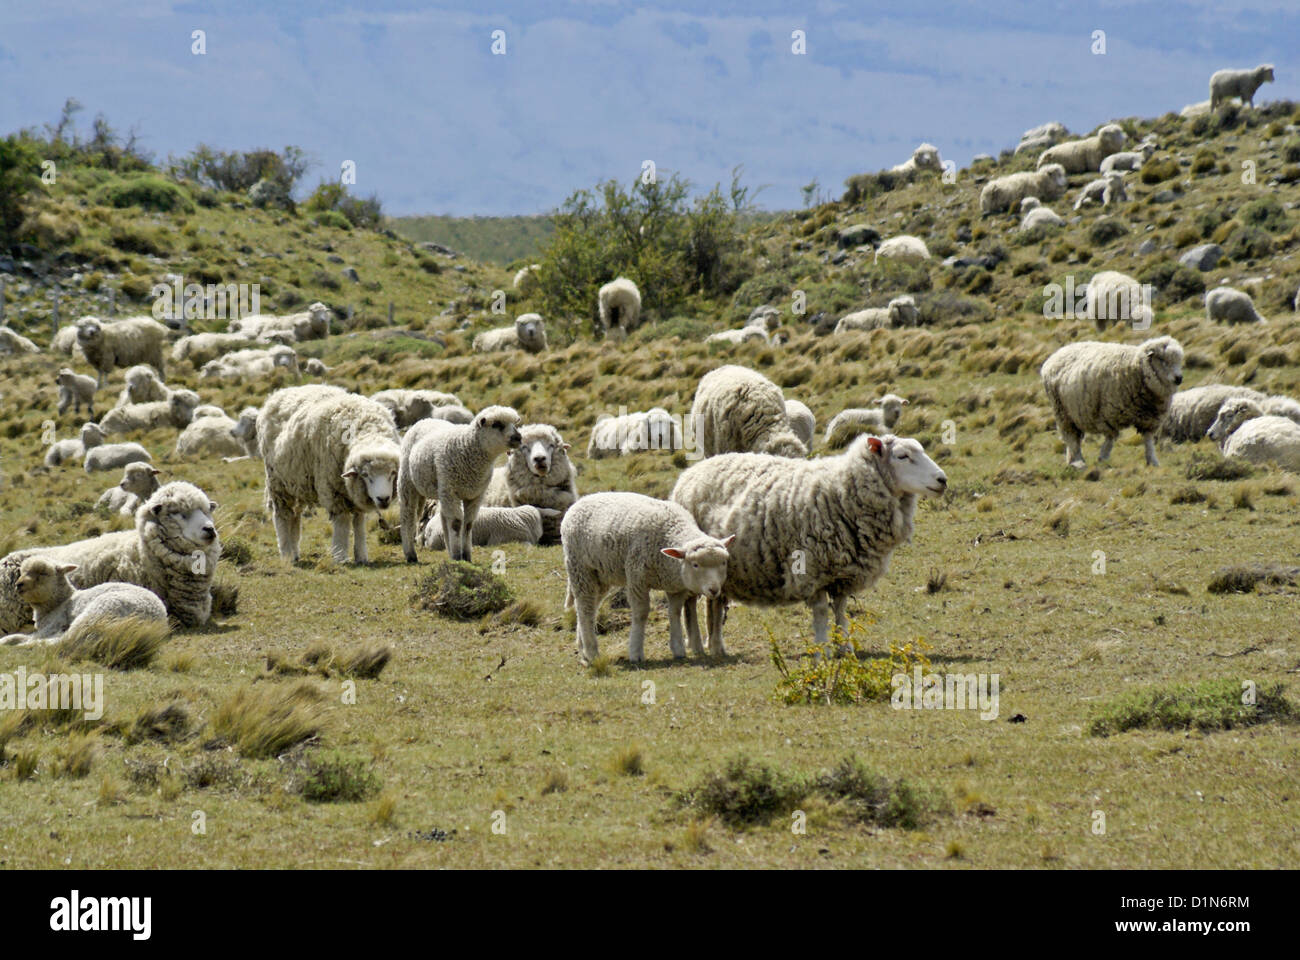 Sheep grazing in Patagonia, Argentina - Stock Image